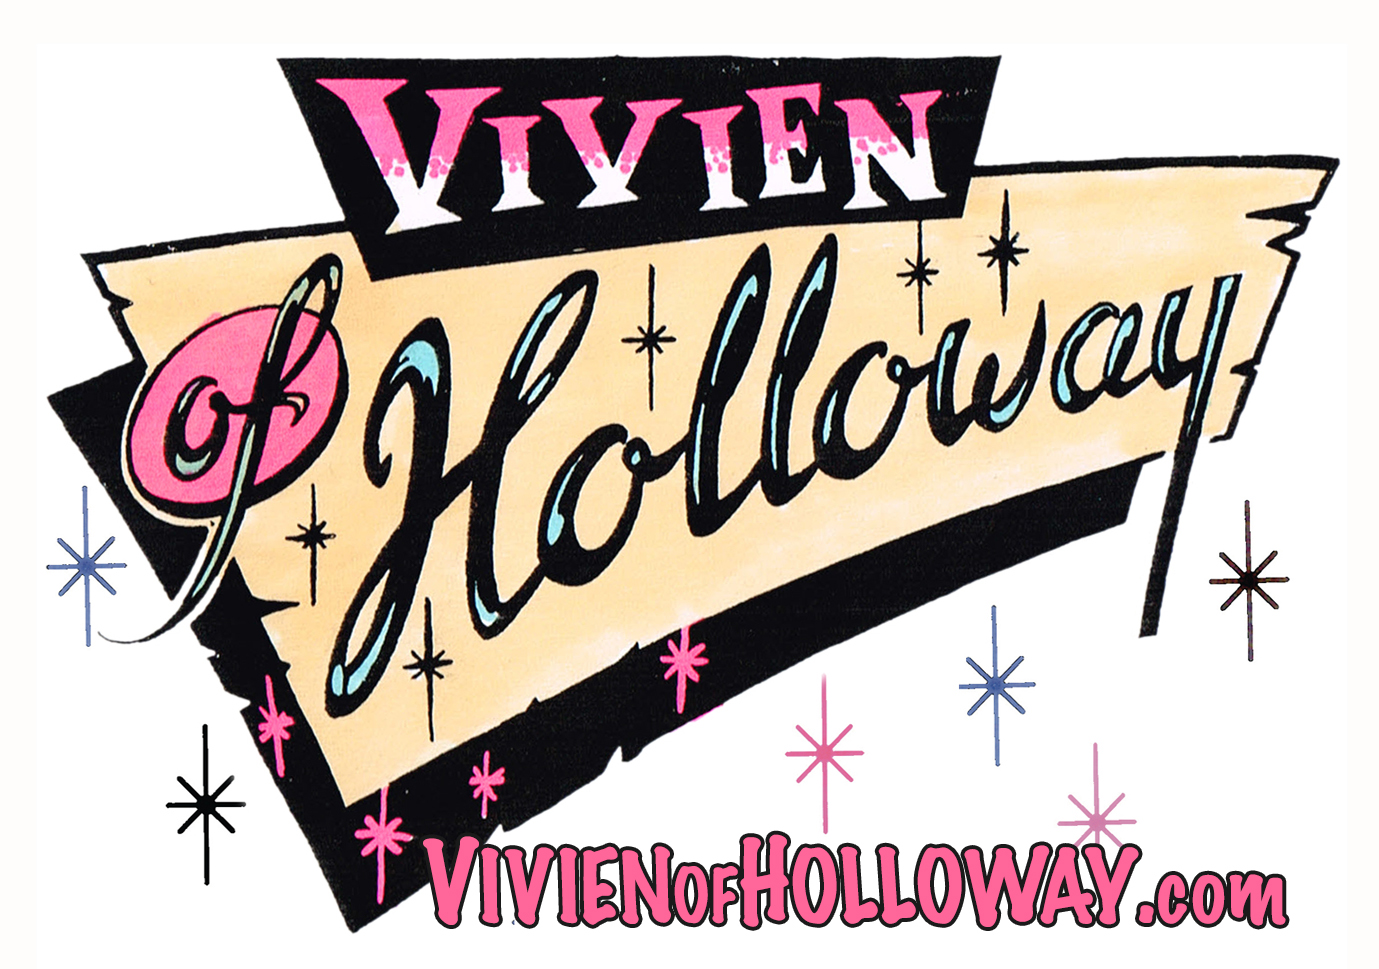 VIVIEN OF HOLLOWAY